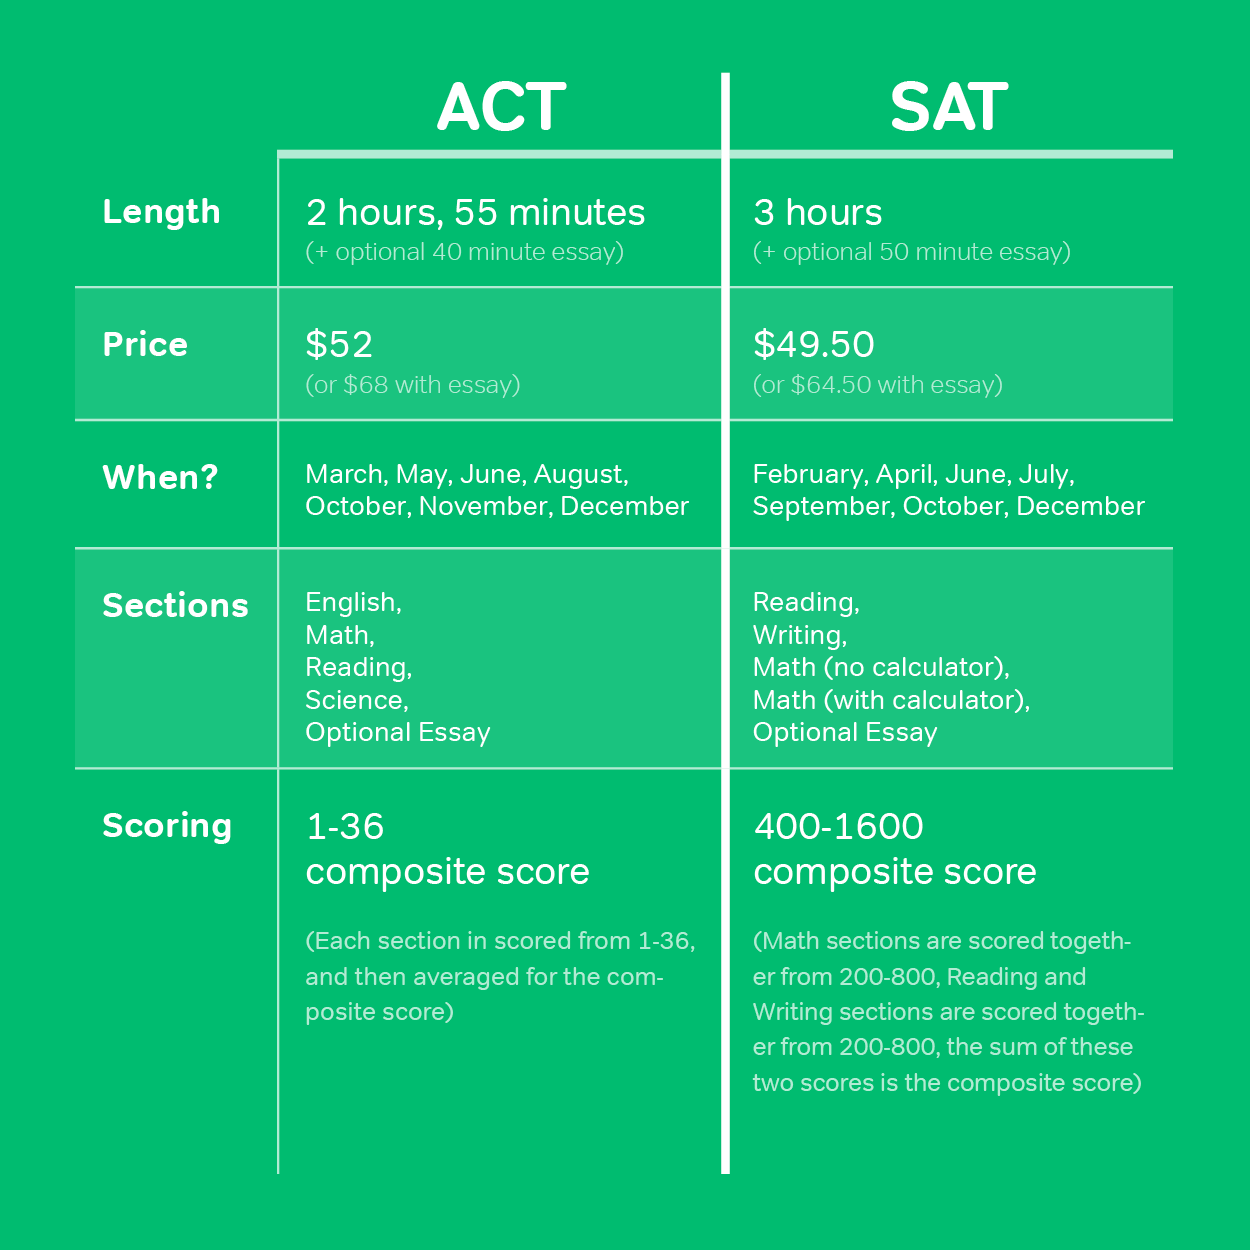 Magoosh ACT vs SAT Chart